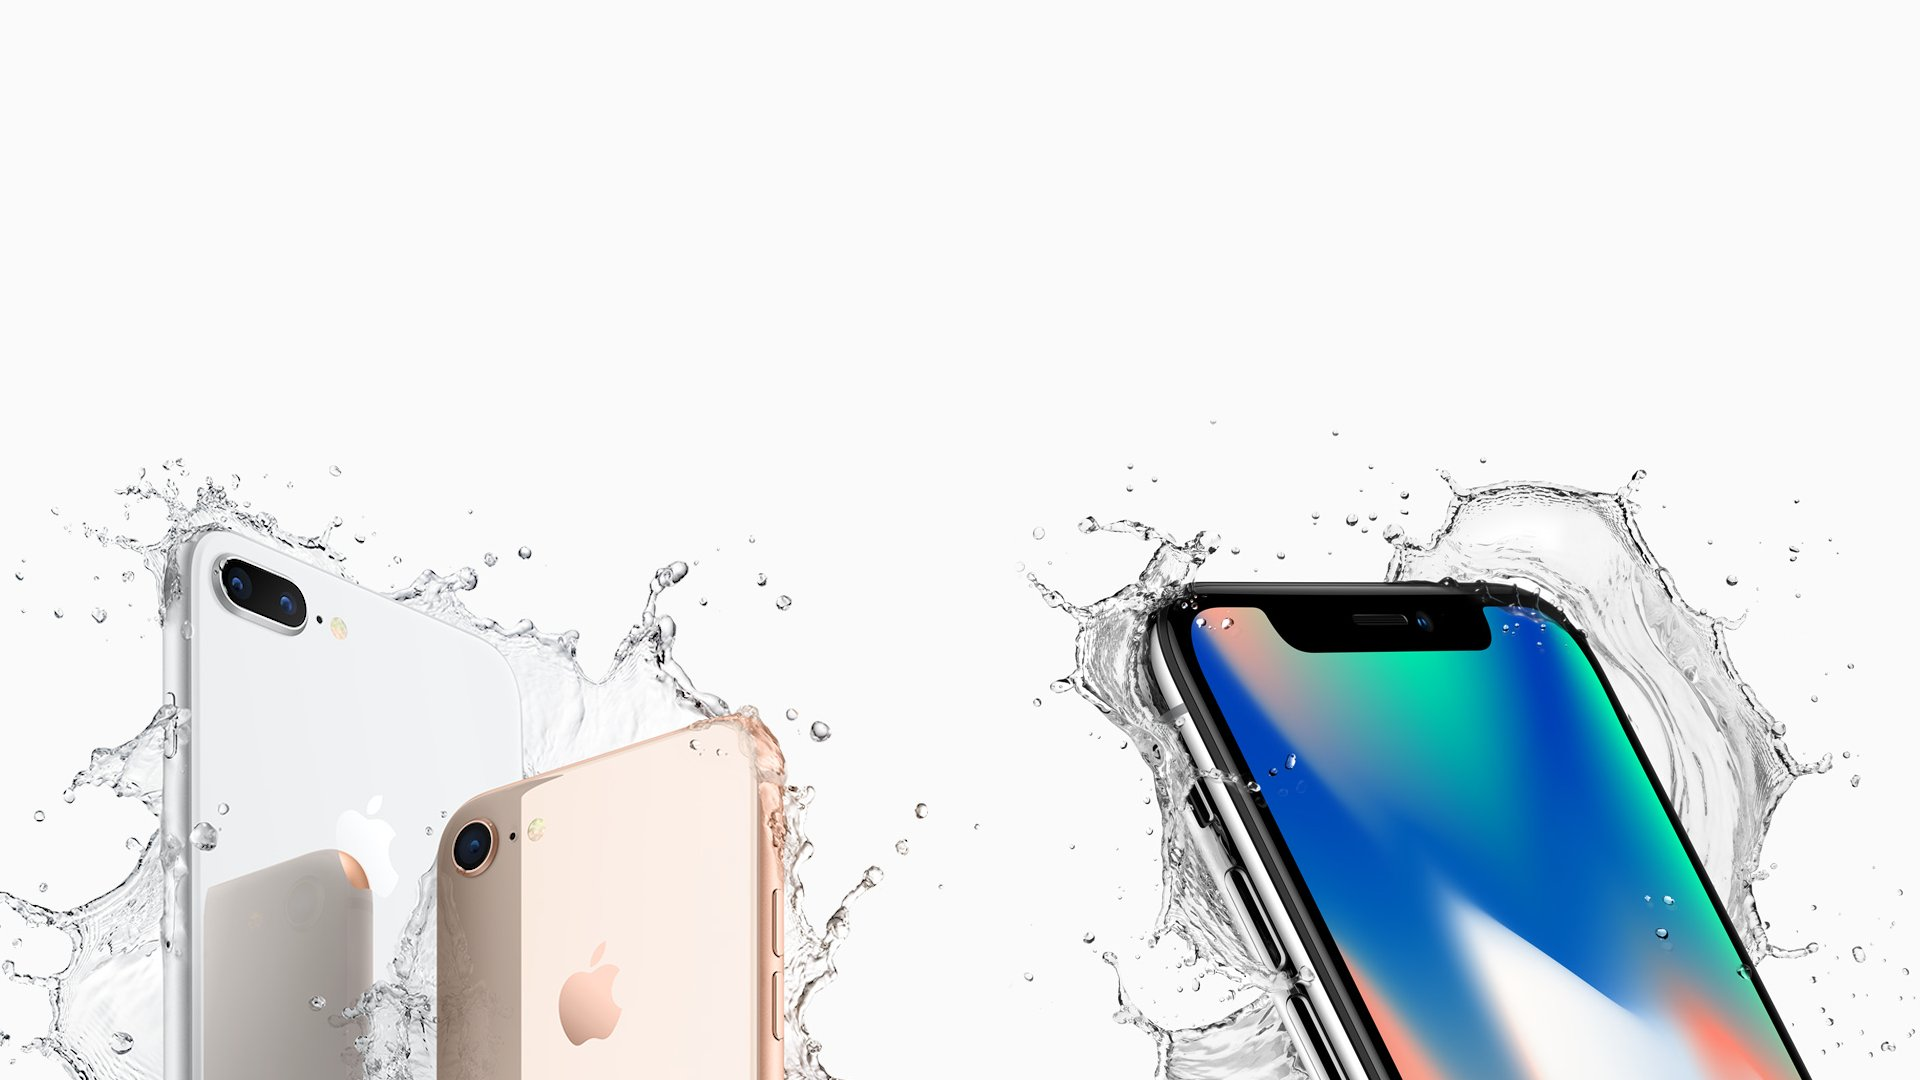 Apple announced an iPhone 8 and iPhone X — here are the most important differences https://t.co/2TmCcFabHa